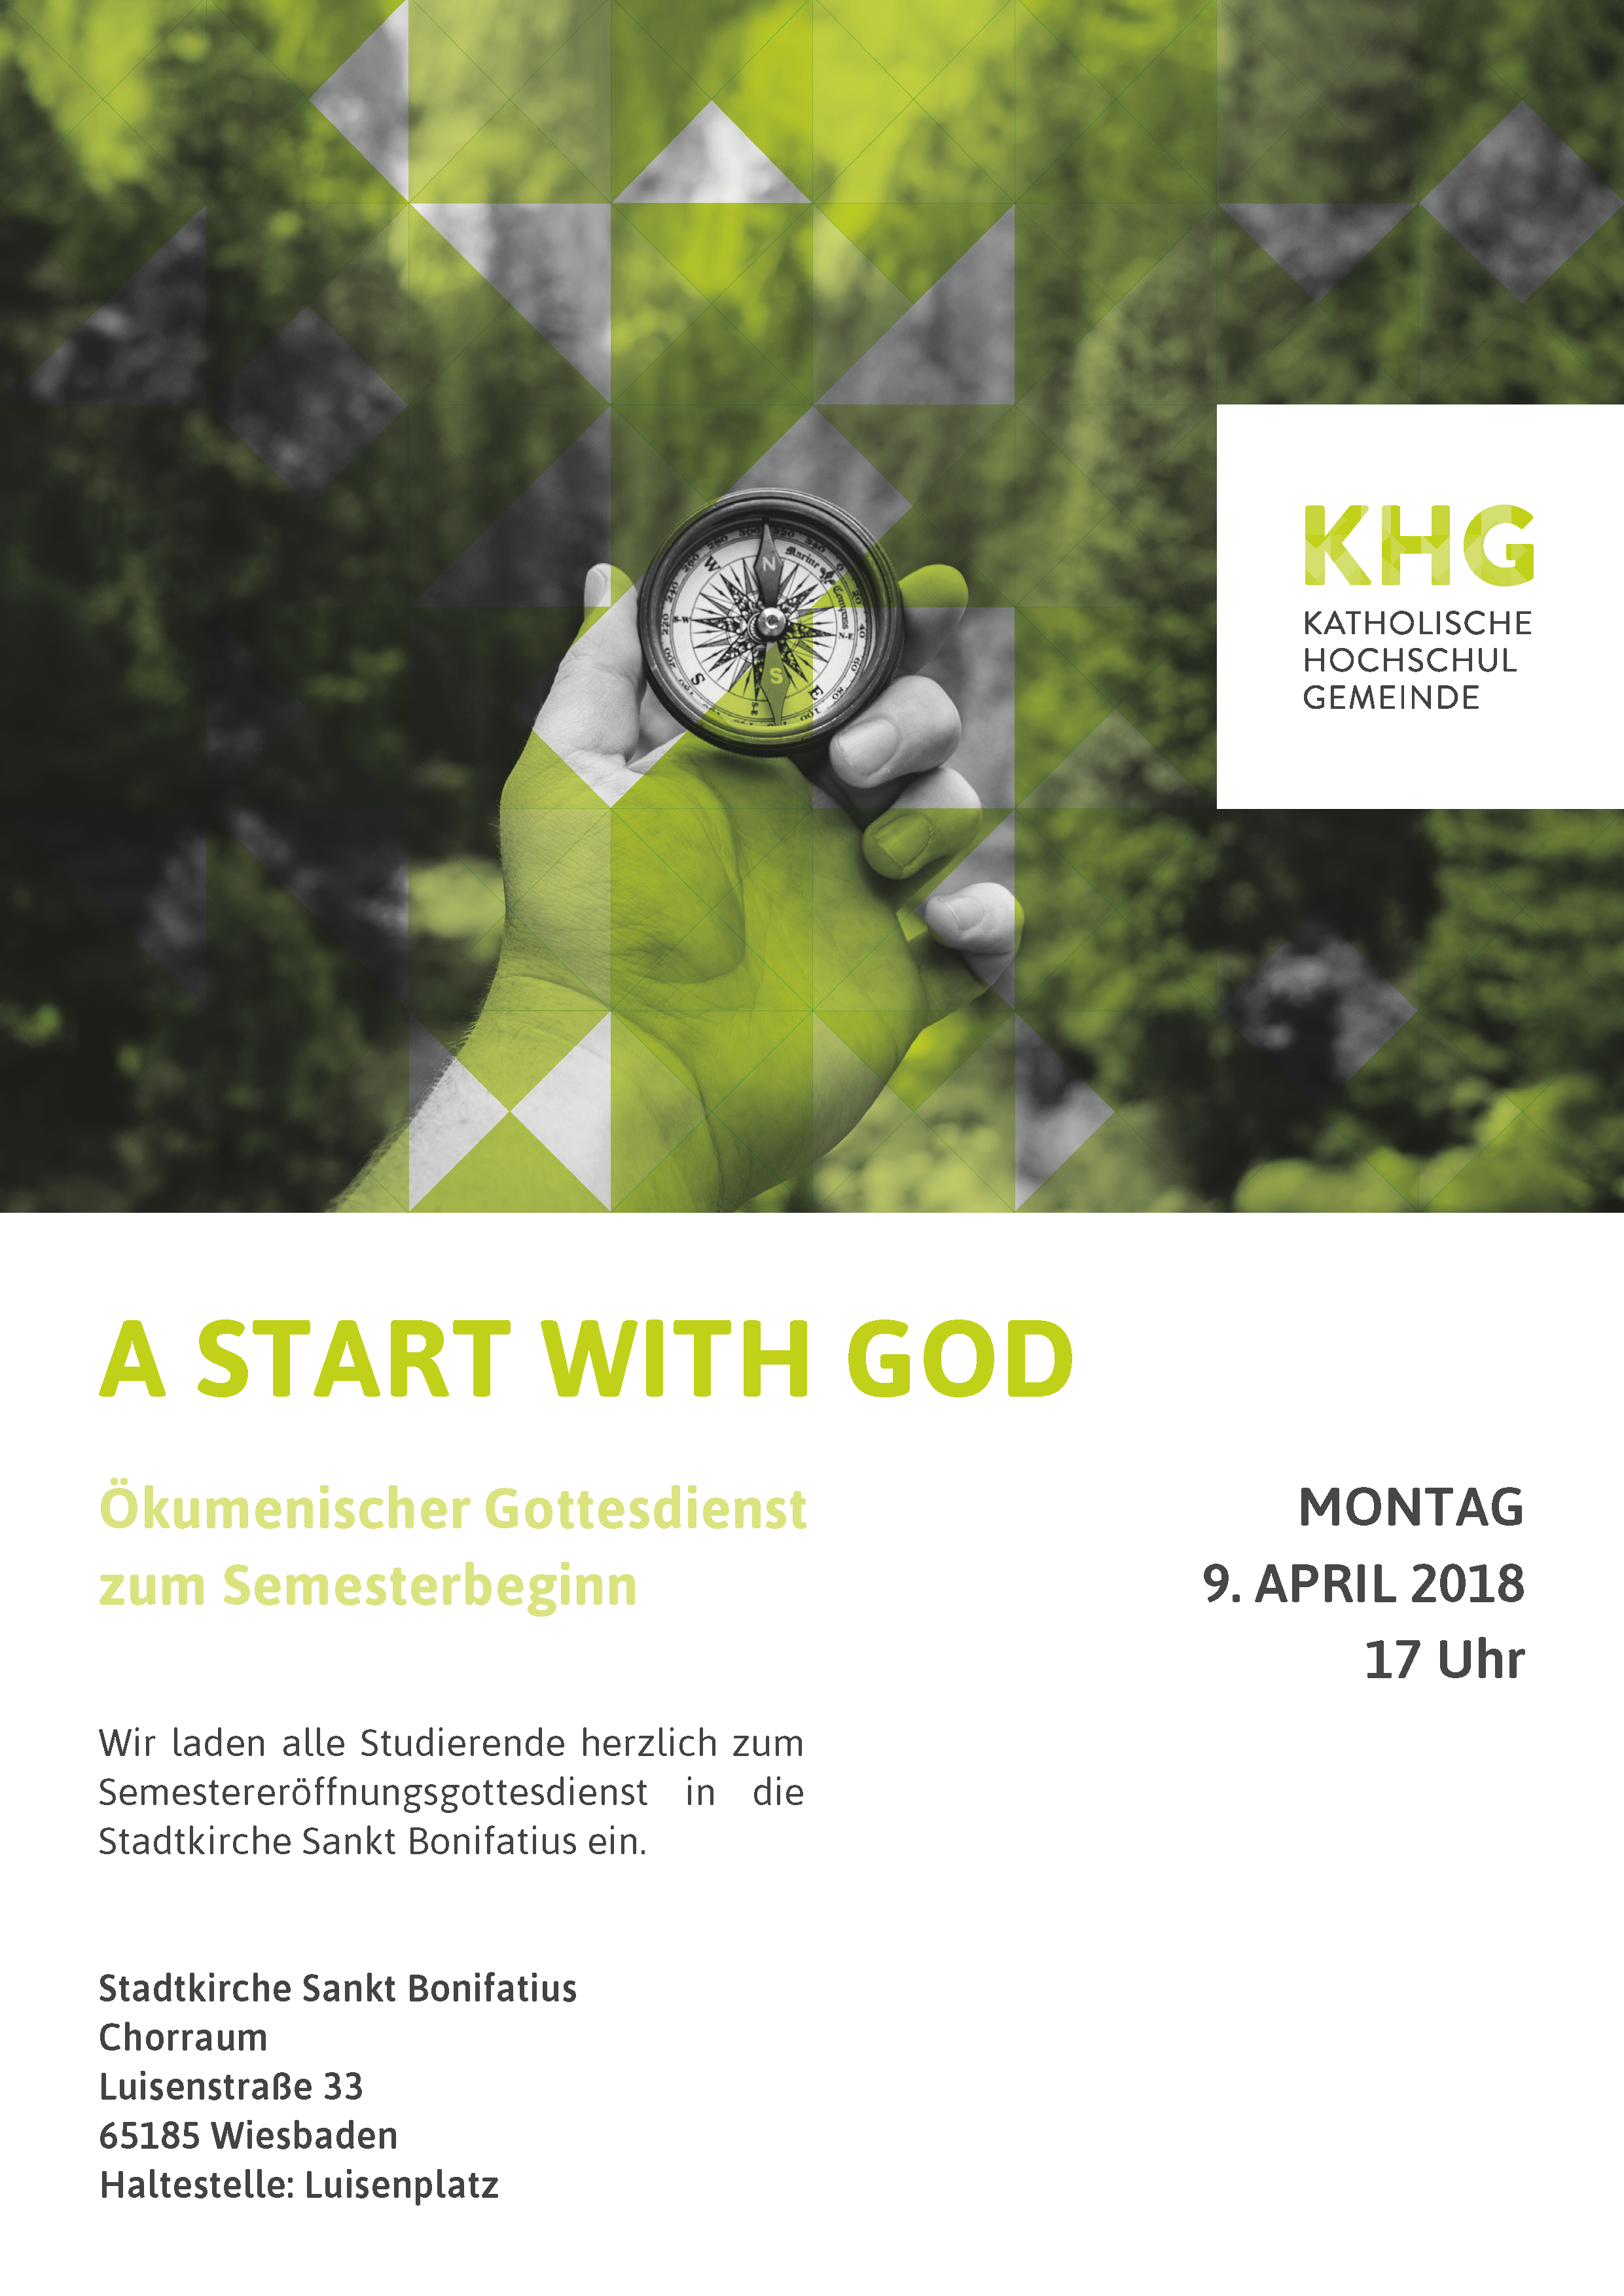 Newsletter_A4_A Start with God.png